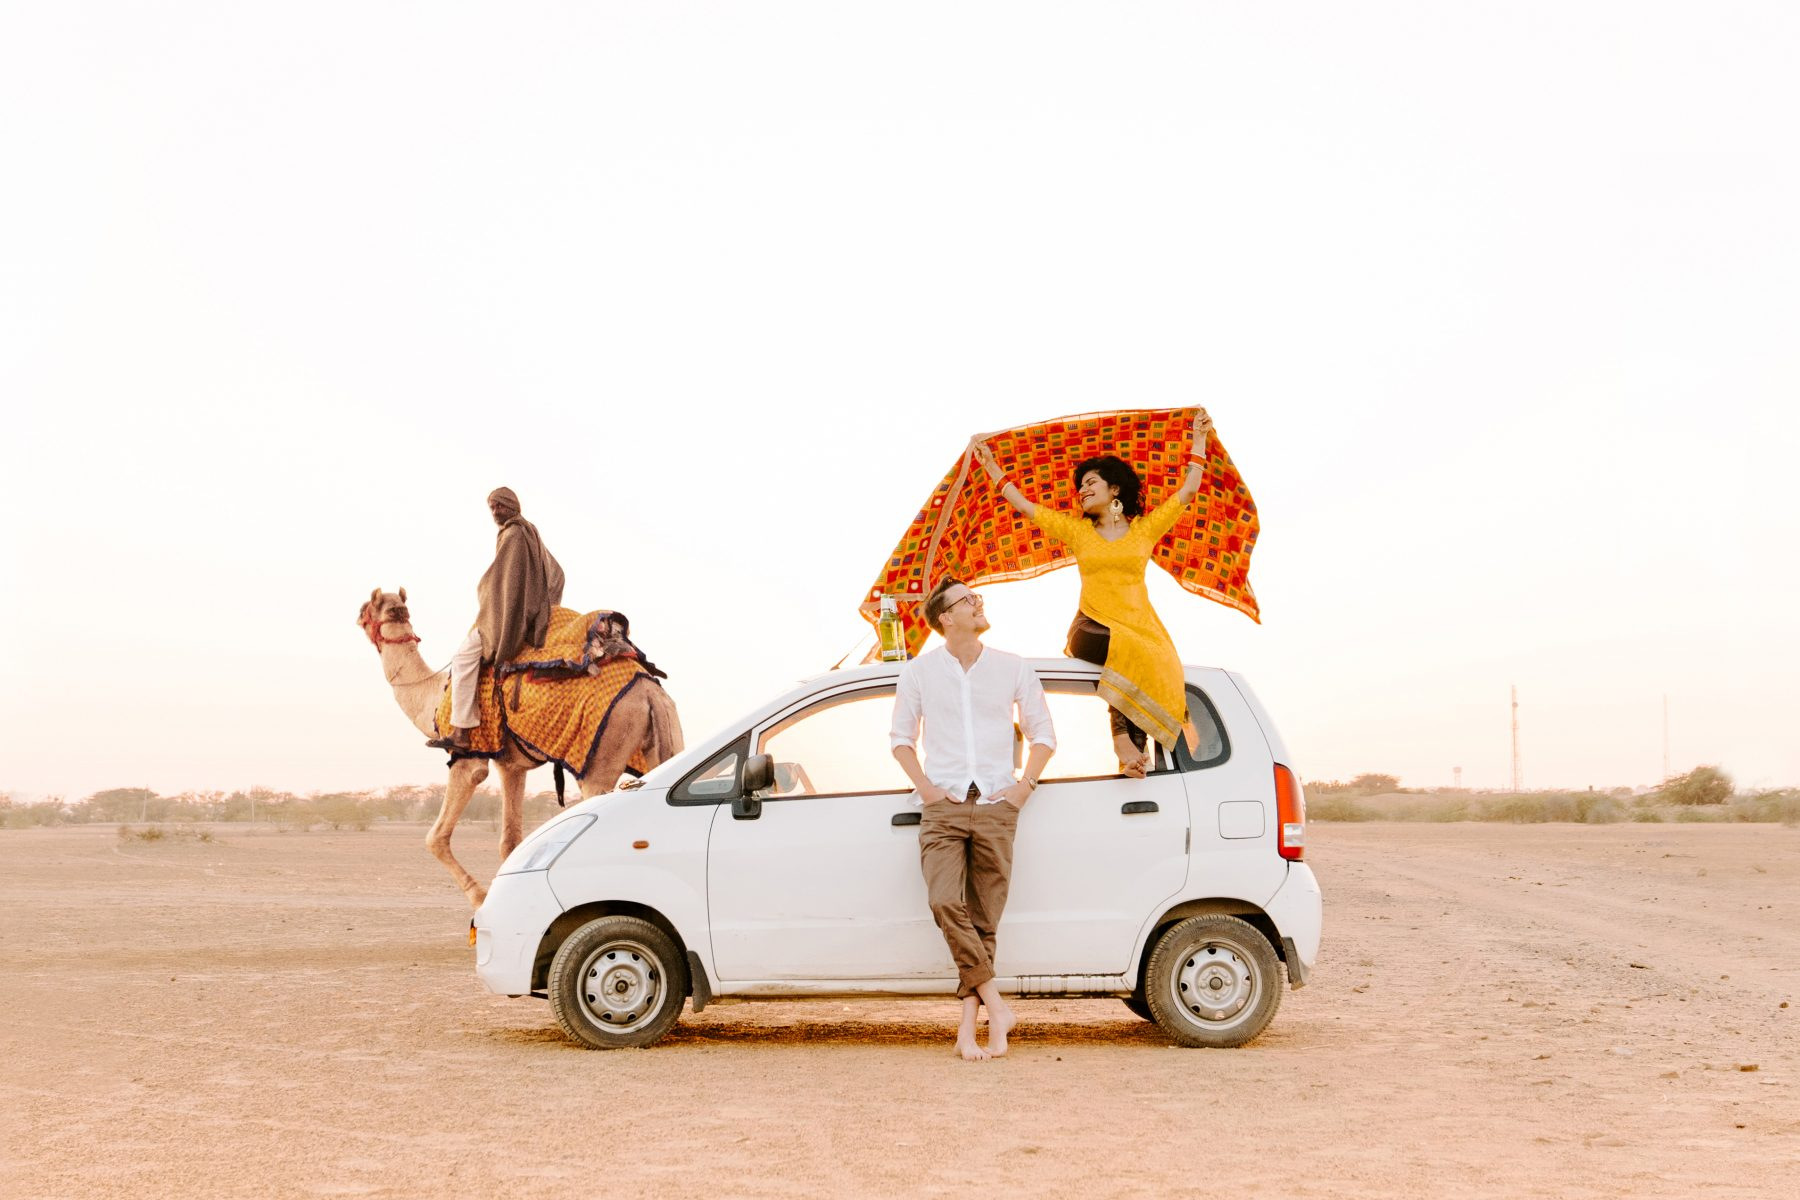 Man and woman leaning on a white car in the desert.